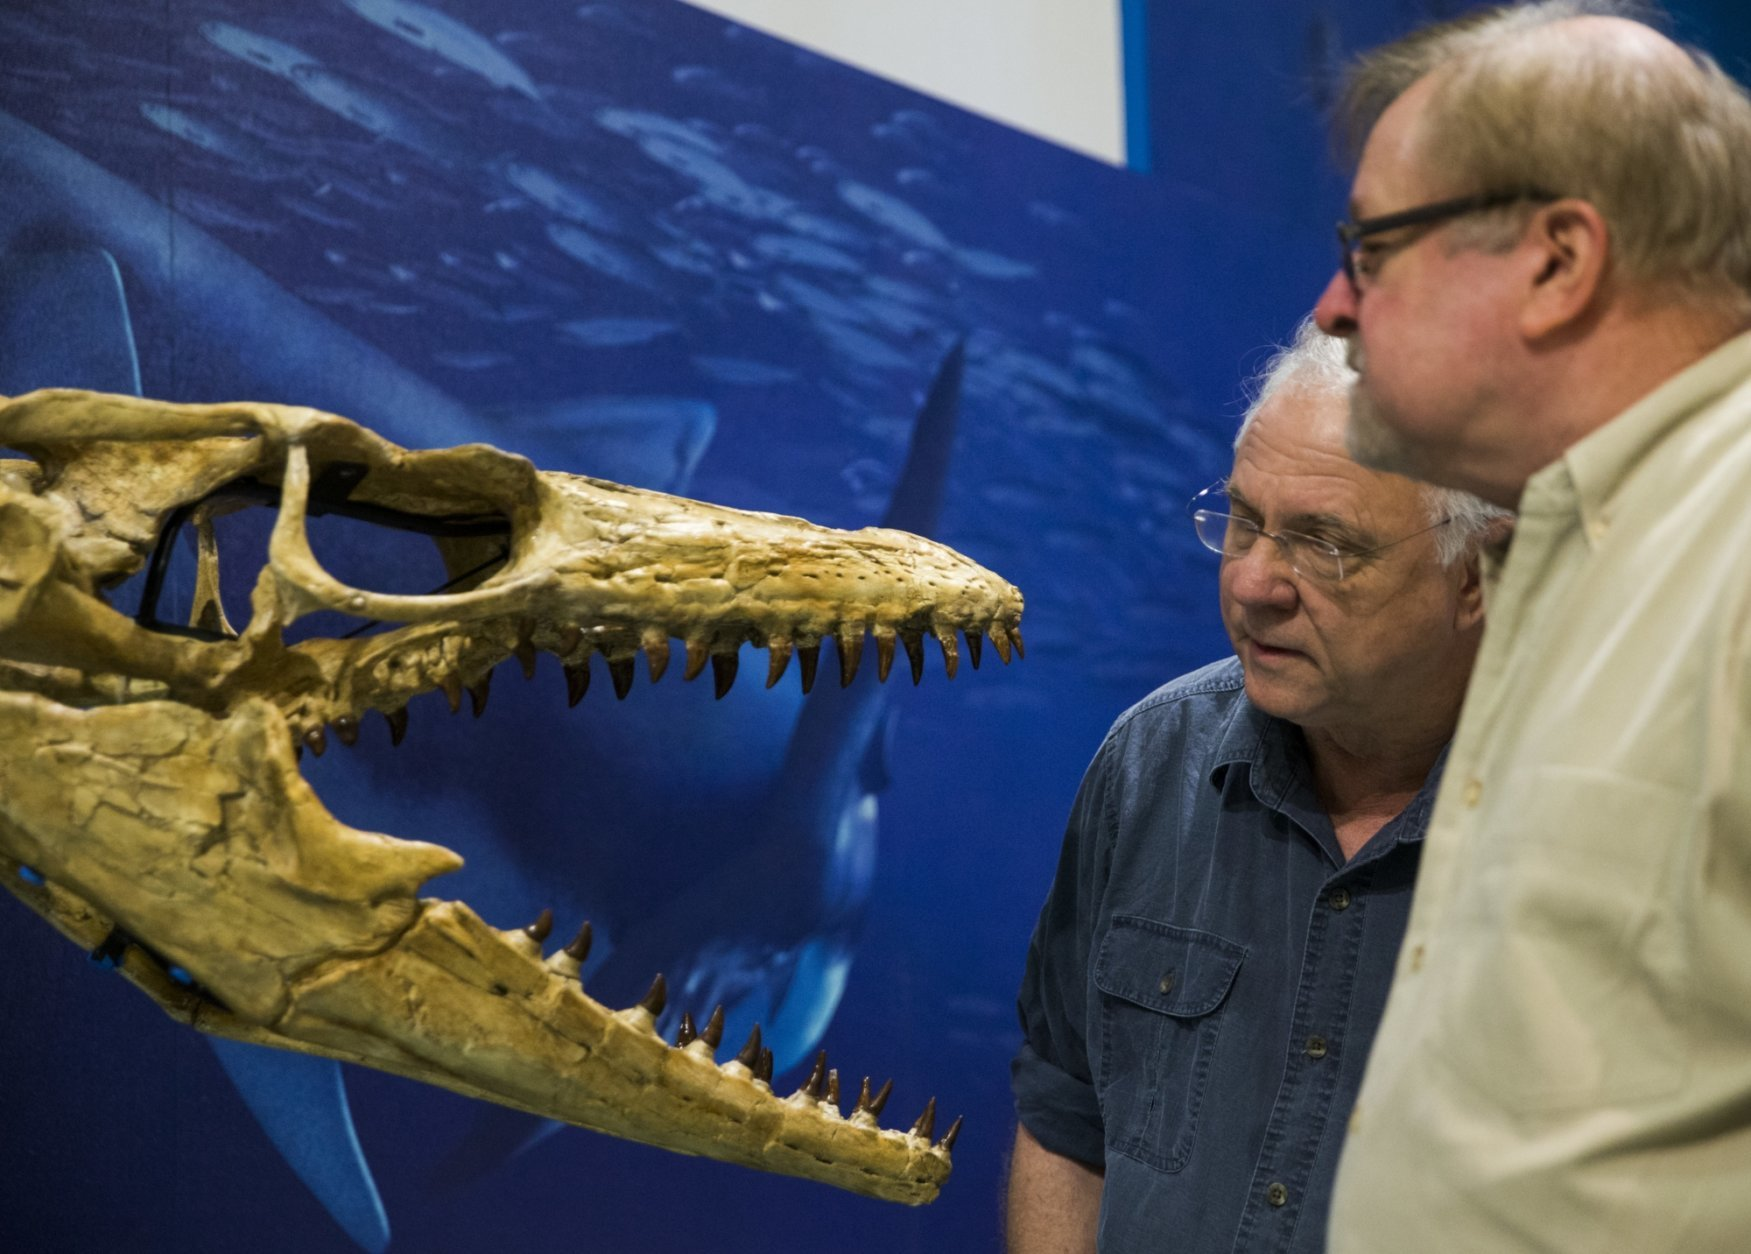 Dr. Louis Jacobs, center, professor emeritus of earth science and president of ISEM at SMU, and volunteer Wayne Furstenworth, right, talk about the exhibit of a Prognathodon kianda skeleton at their Sea Monsters exhibit on Oct. 23, 2018 at the Smithsonian National Museum of Natural History in Washington.  The exhibit features Angolan mosasaurs that they and their team have unearthed over the last decade.  (Ashley Landis /The Dallas Morning News via AP)